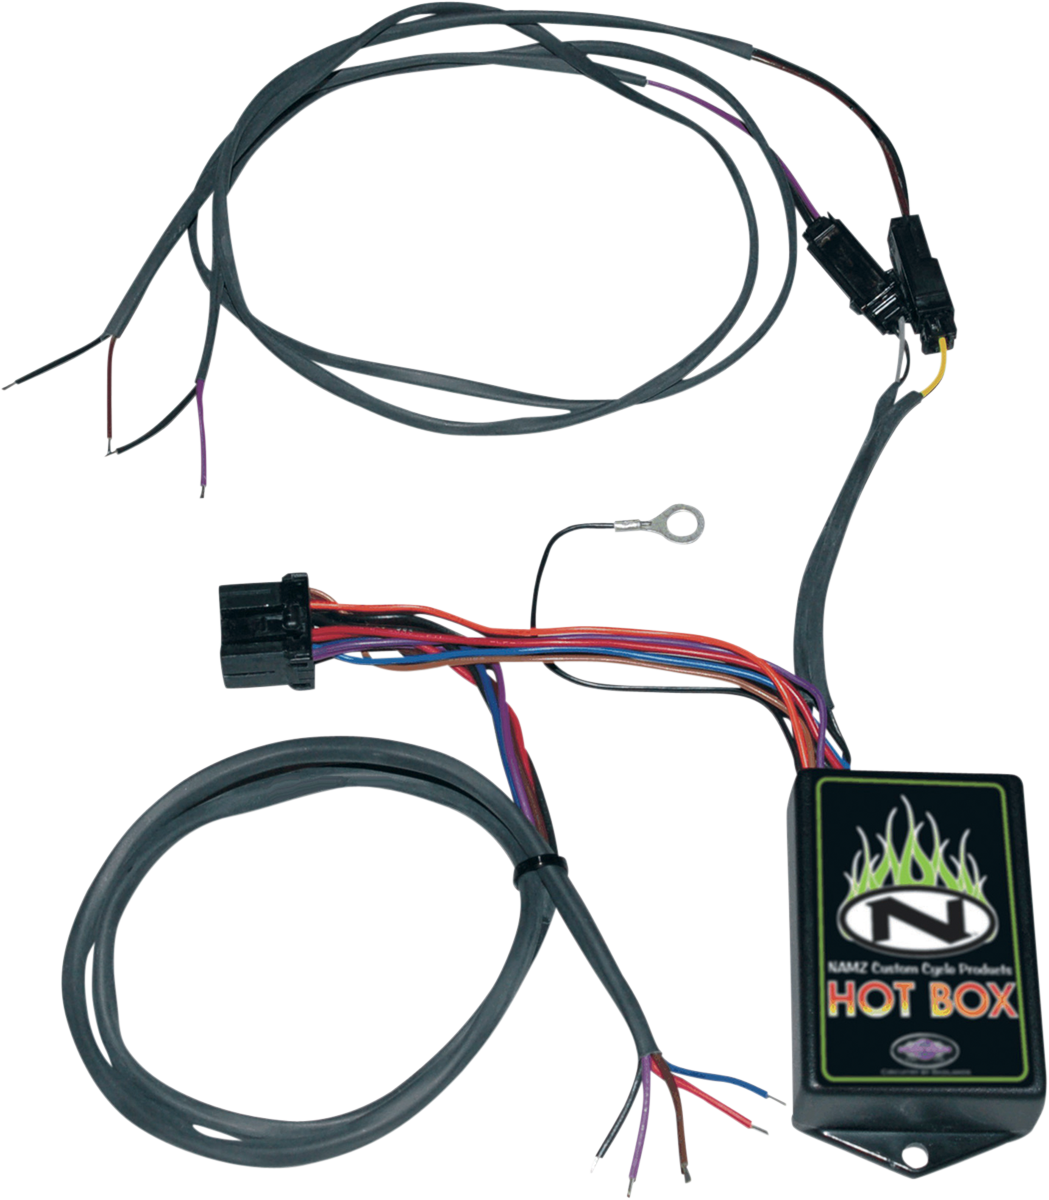 Wiring Harness Gets Hot Namz Box Run Brake Turn Rear Fender 96 16 Harley Dyna Xl